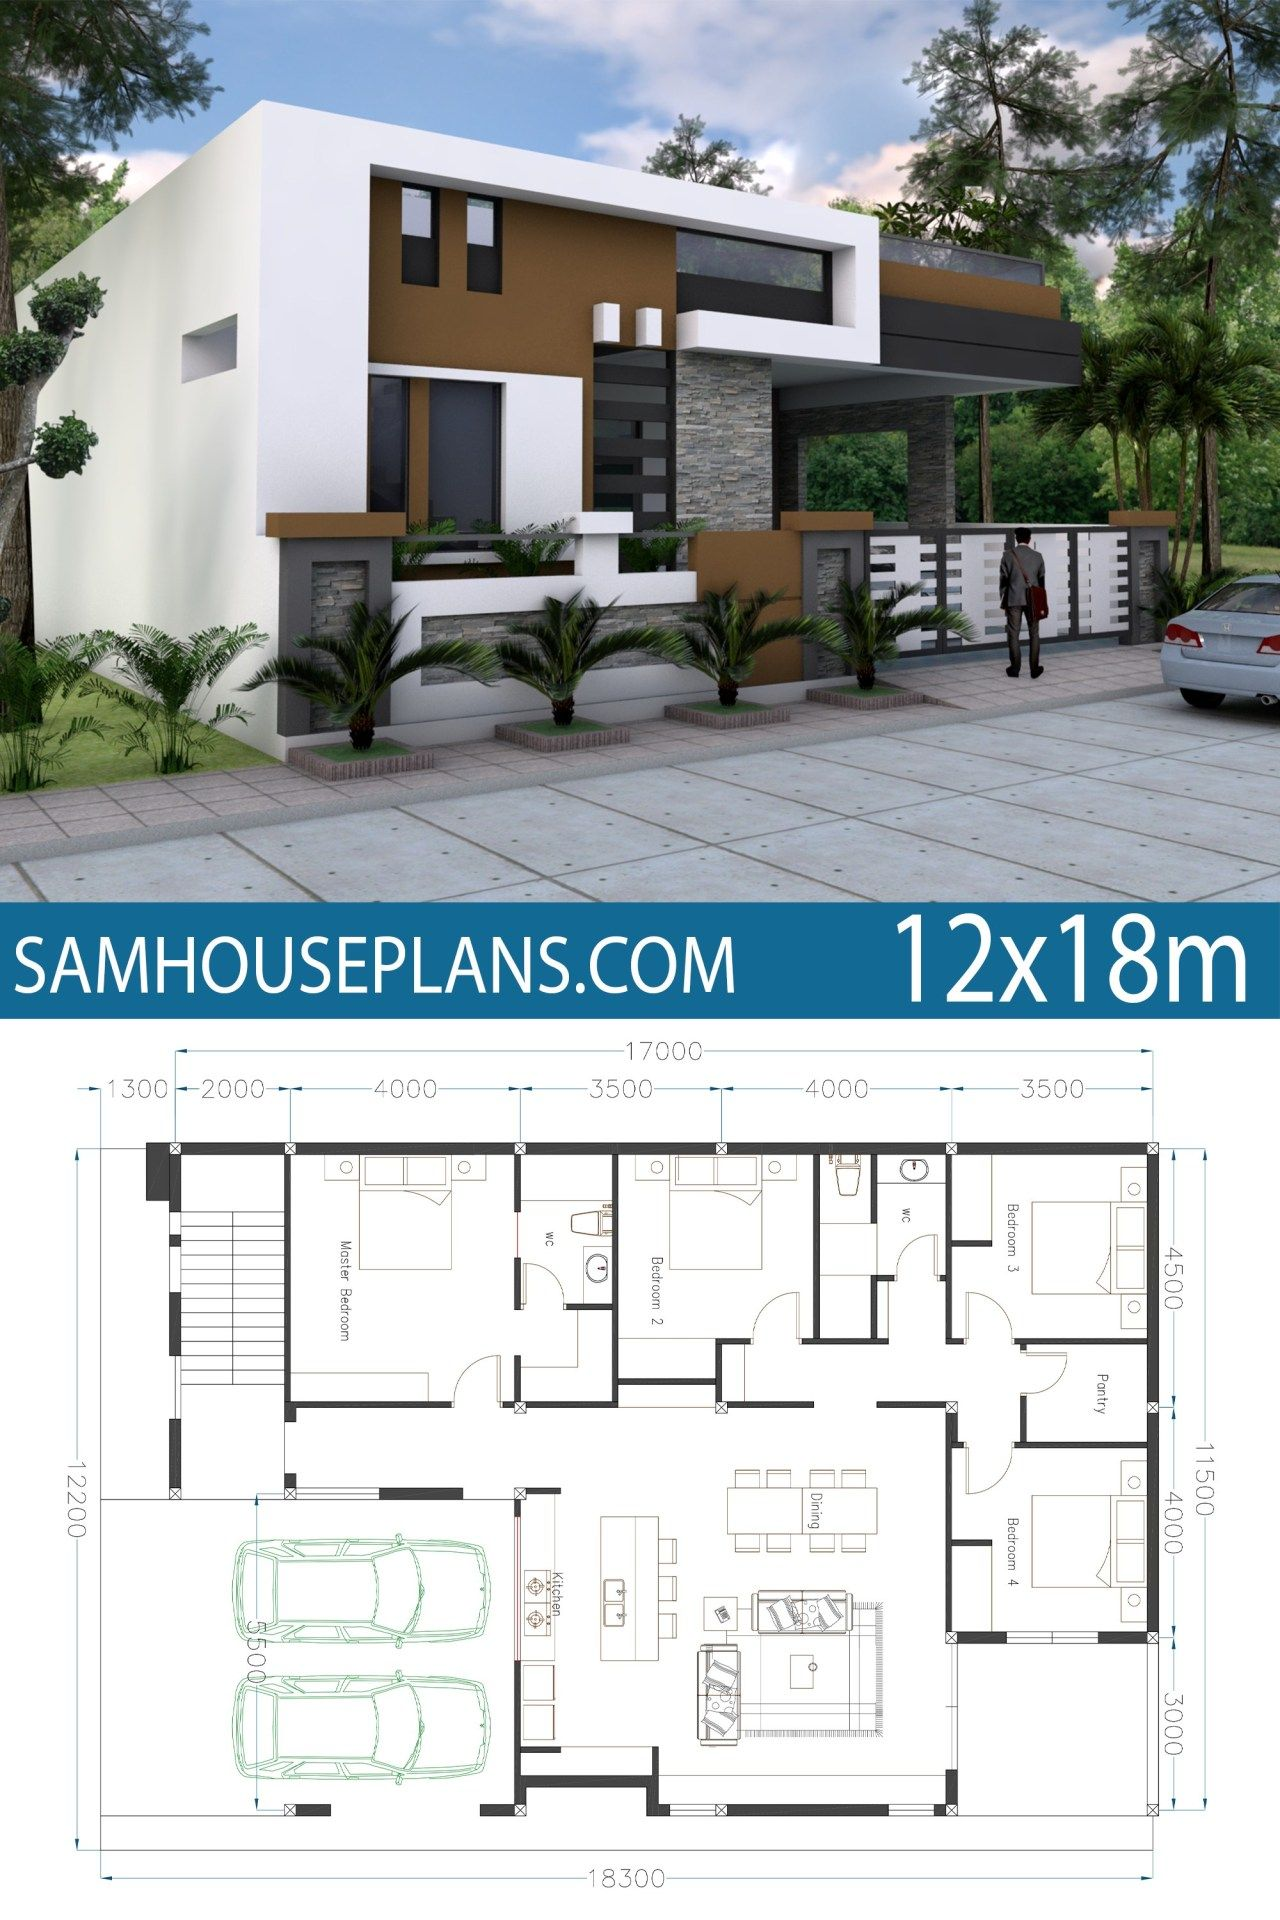 Home Design 40x60f With 4 Bedrooms Plan Architecture Maison